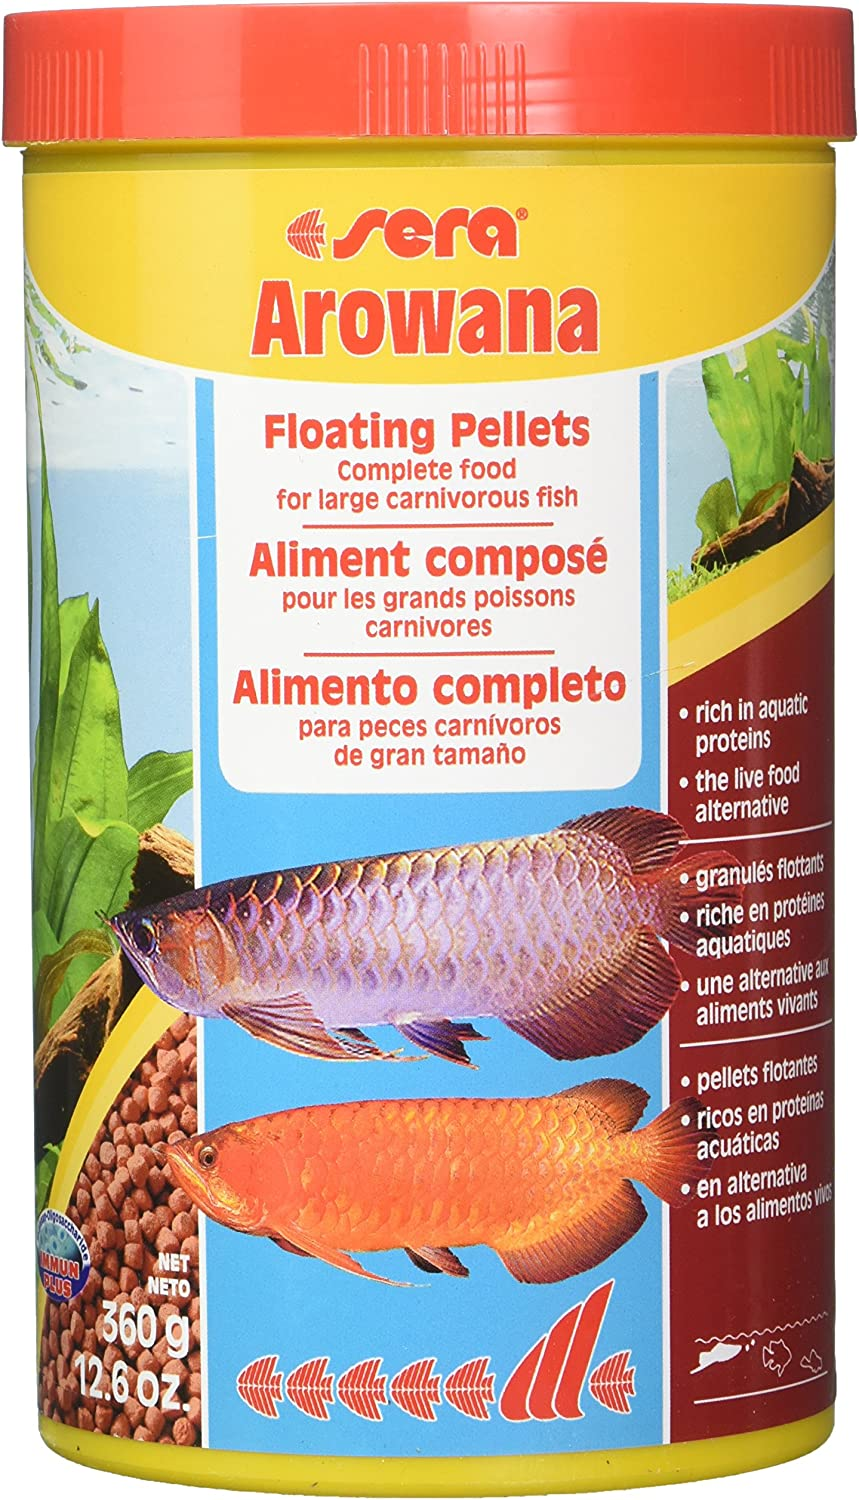 Sera 400 Arowana 12.6 oz 1.000 ml Pet Food, One Size